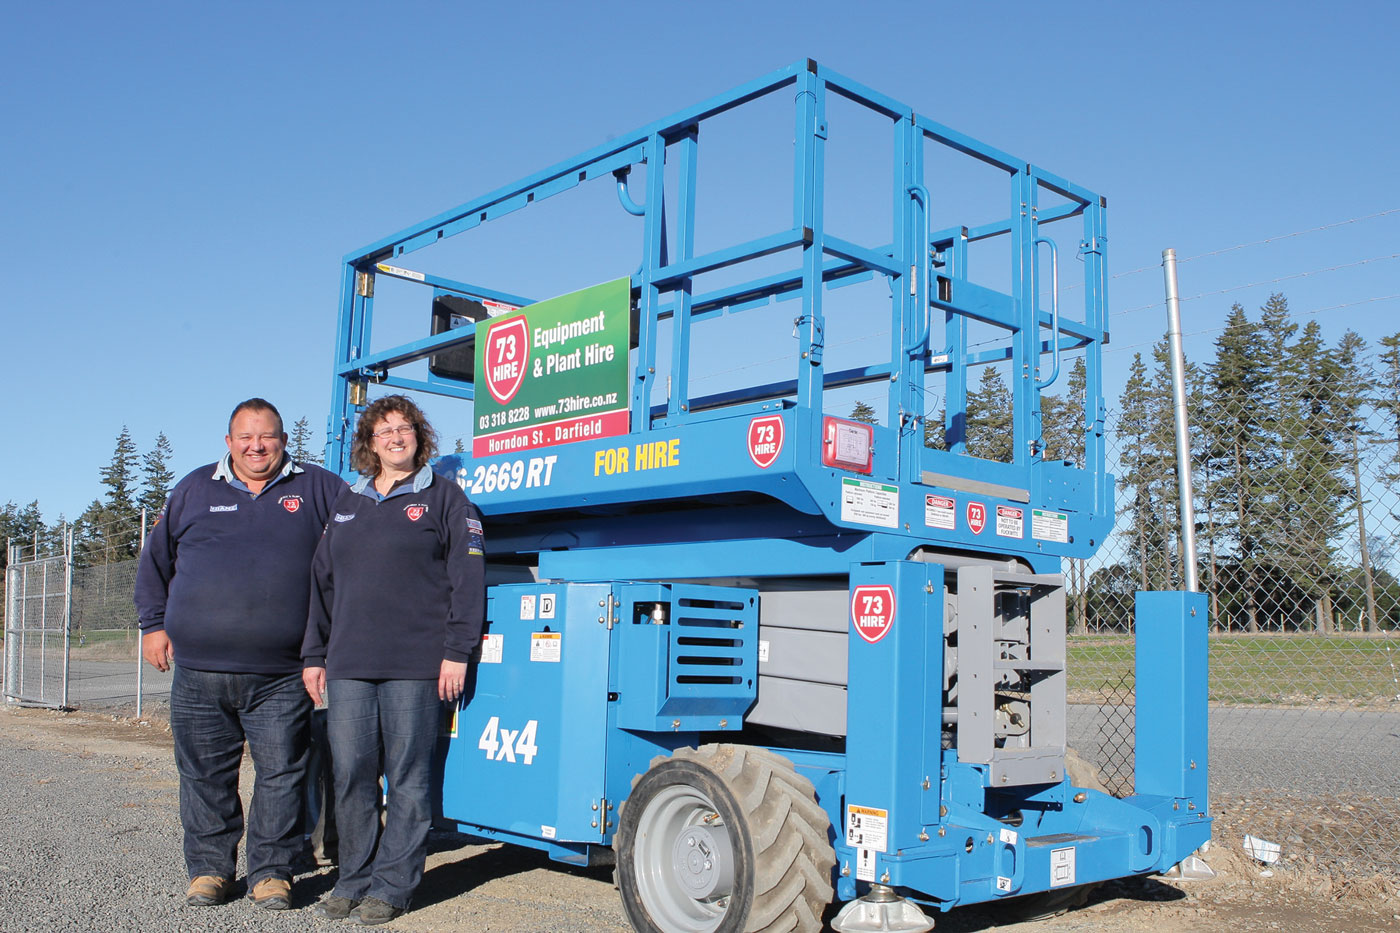 73 HIRE IS A YOUNG EQUIPMENT HIRE BUSINESS, Les Barnett and Catherine Field  Terx genie